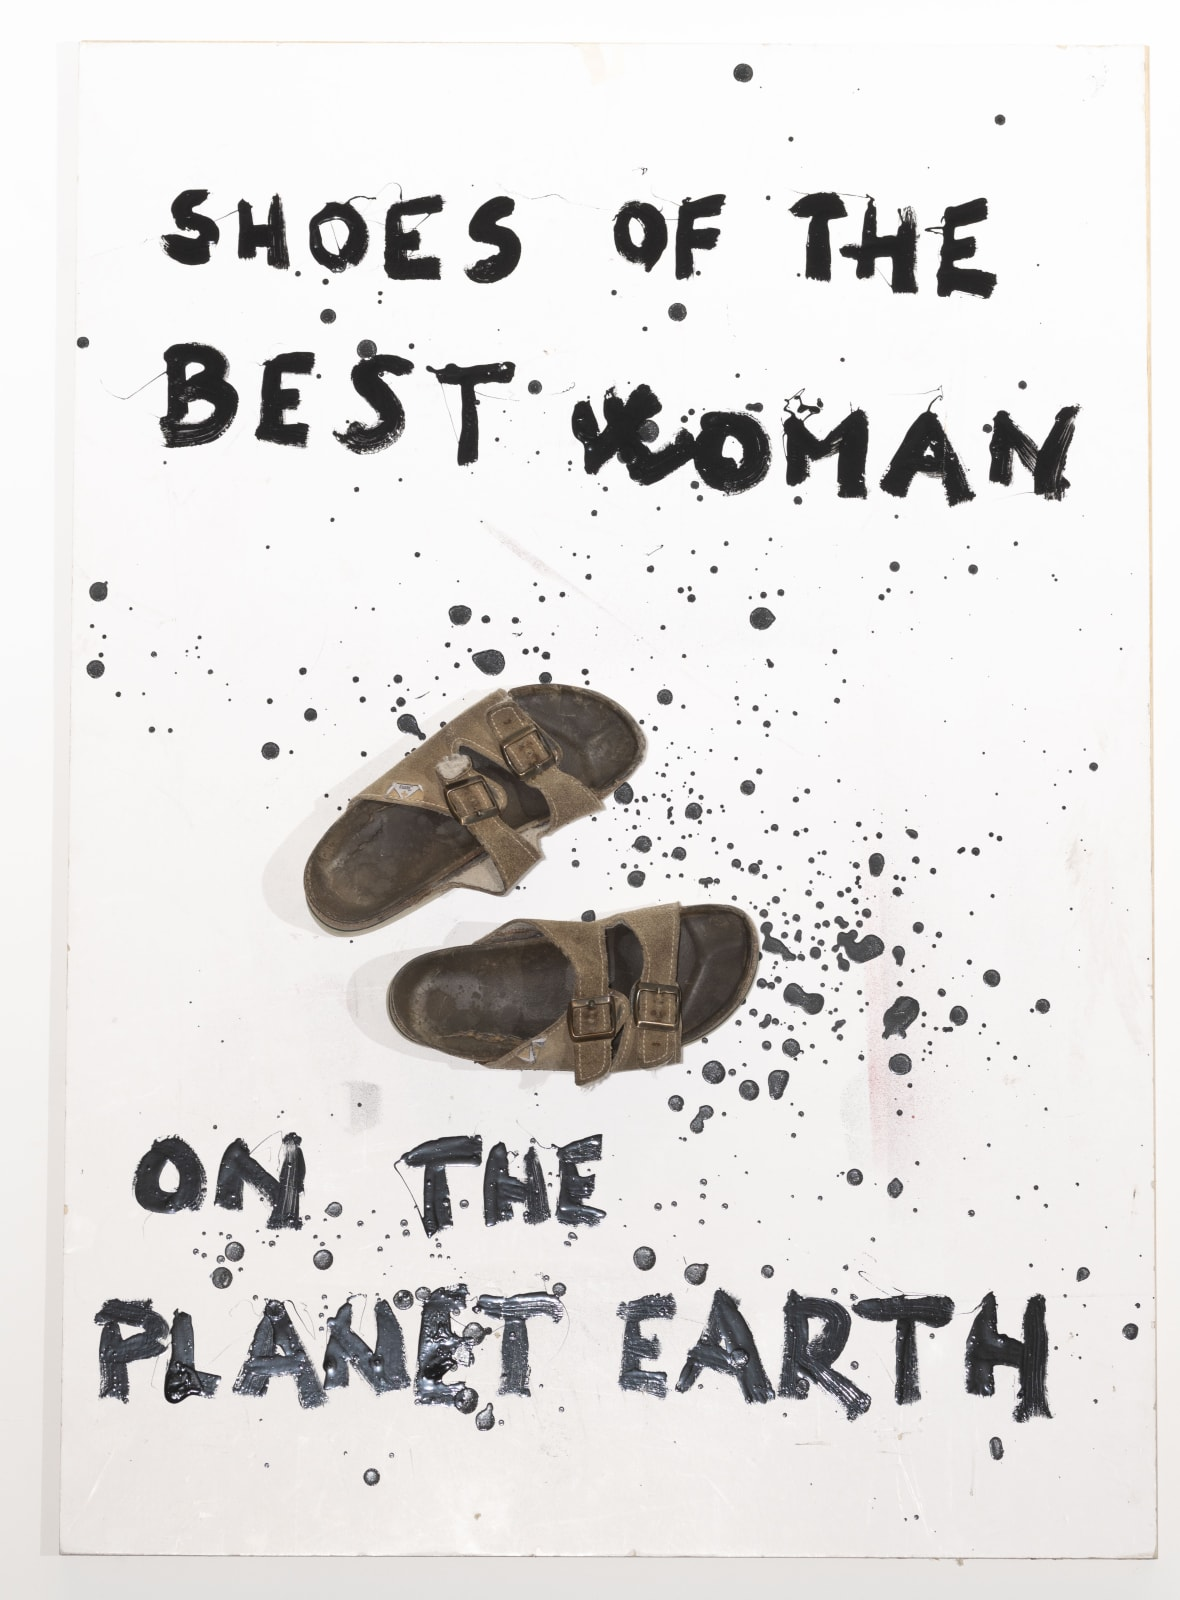 Krištof Kintera, Shoes of the best woman on the planet earth, 2019